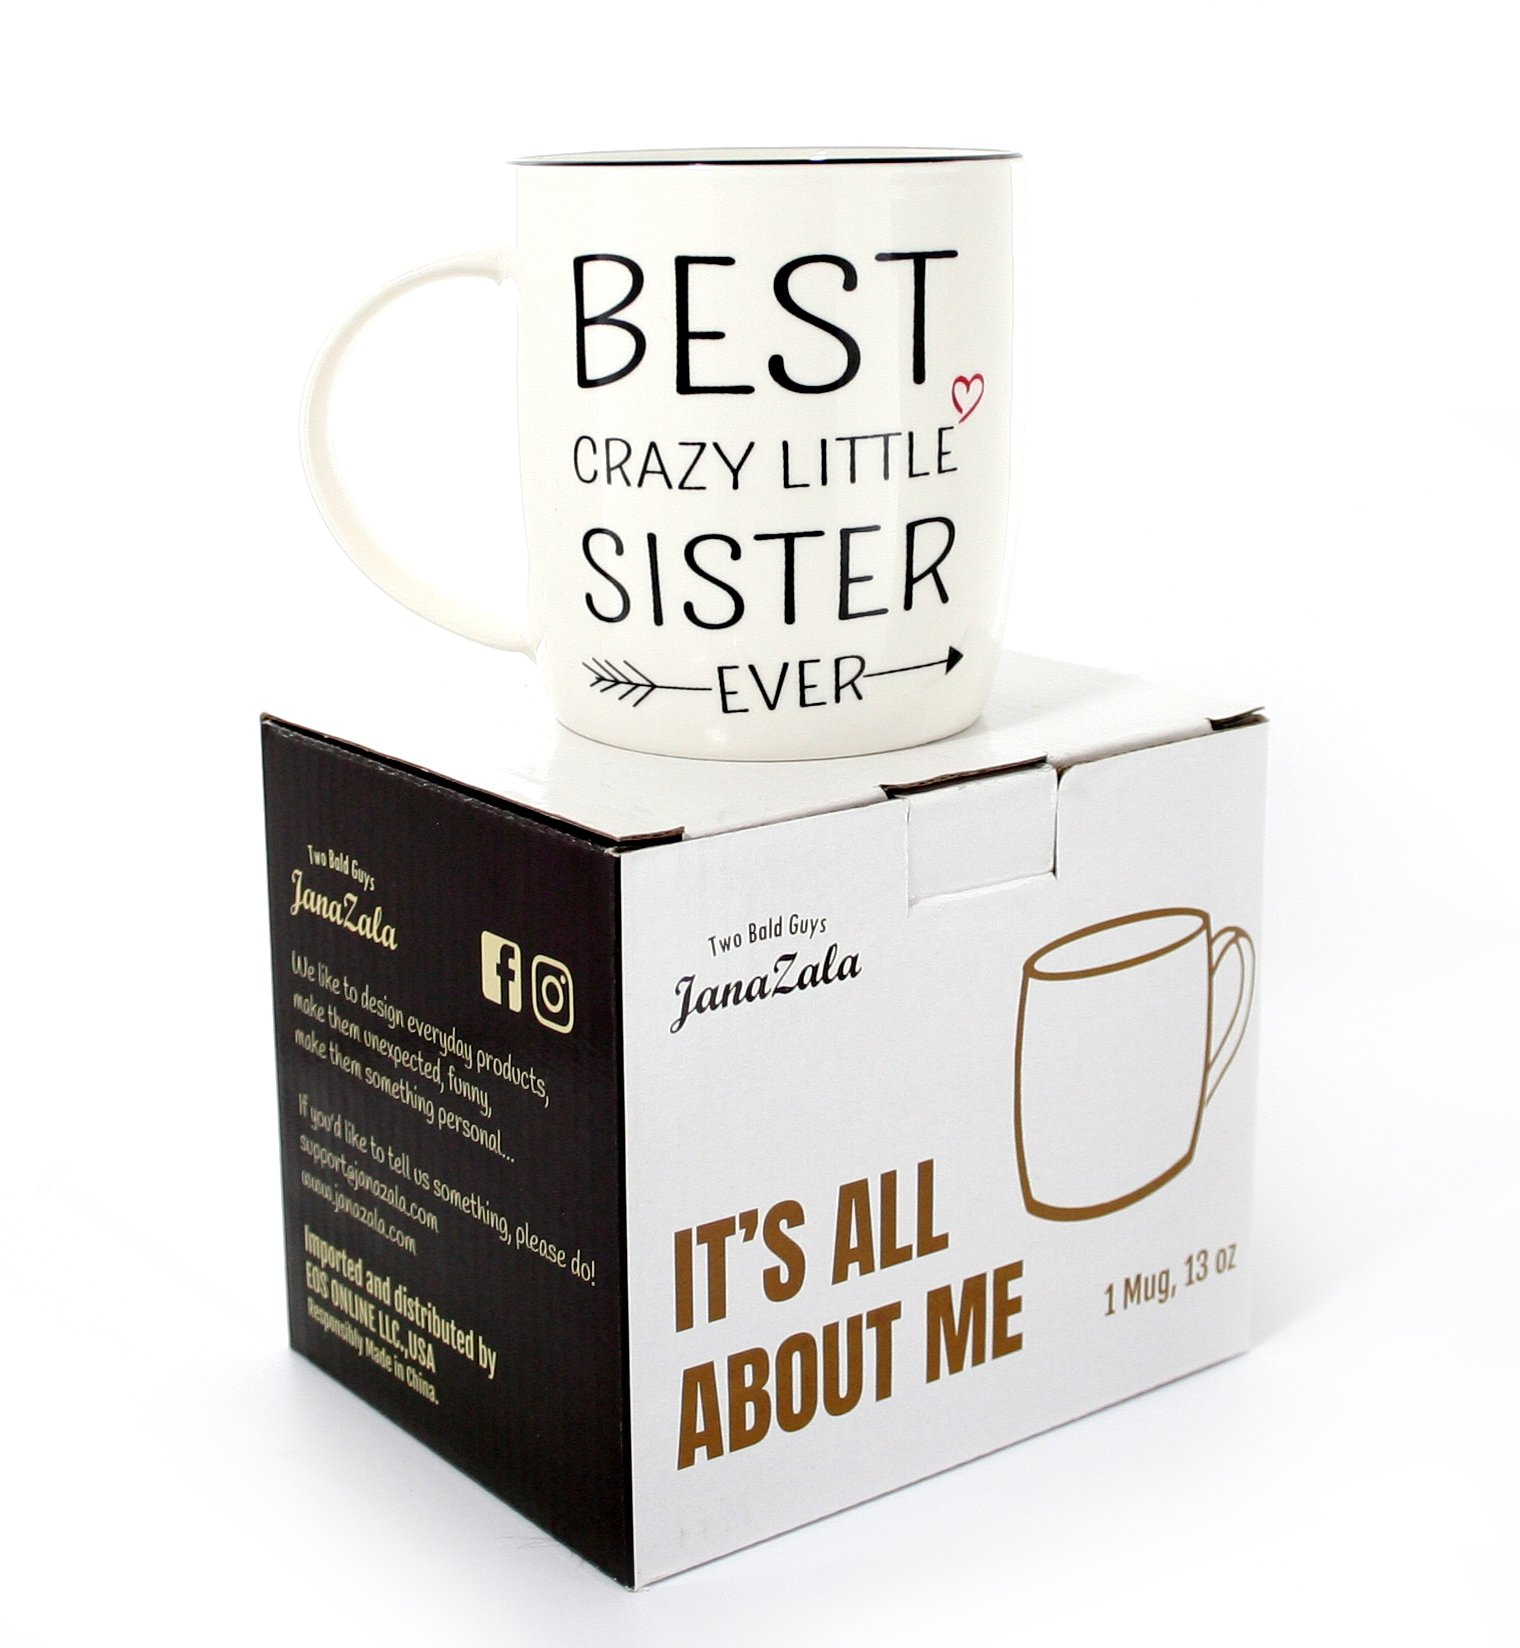 Janazala Best Little Sister Ever Coffee Mug, Crazy Little Sister Gift, Funny Anniversary and Birthday Gifts for Sister from Sister or Brother, Ceramic, 13 Ounce